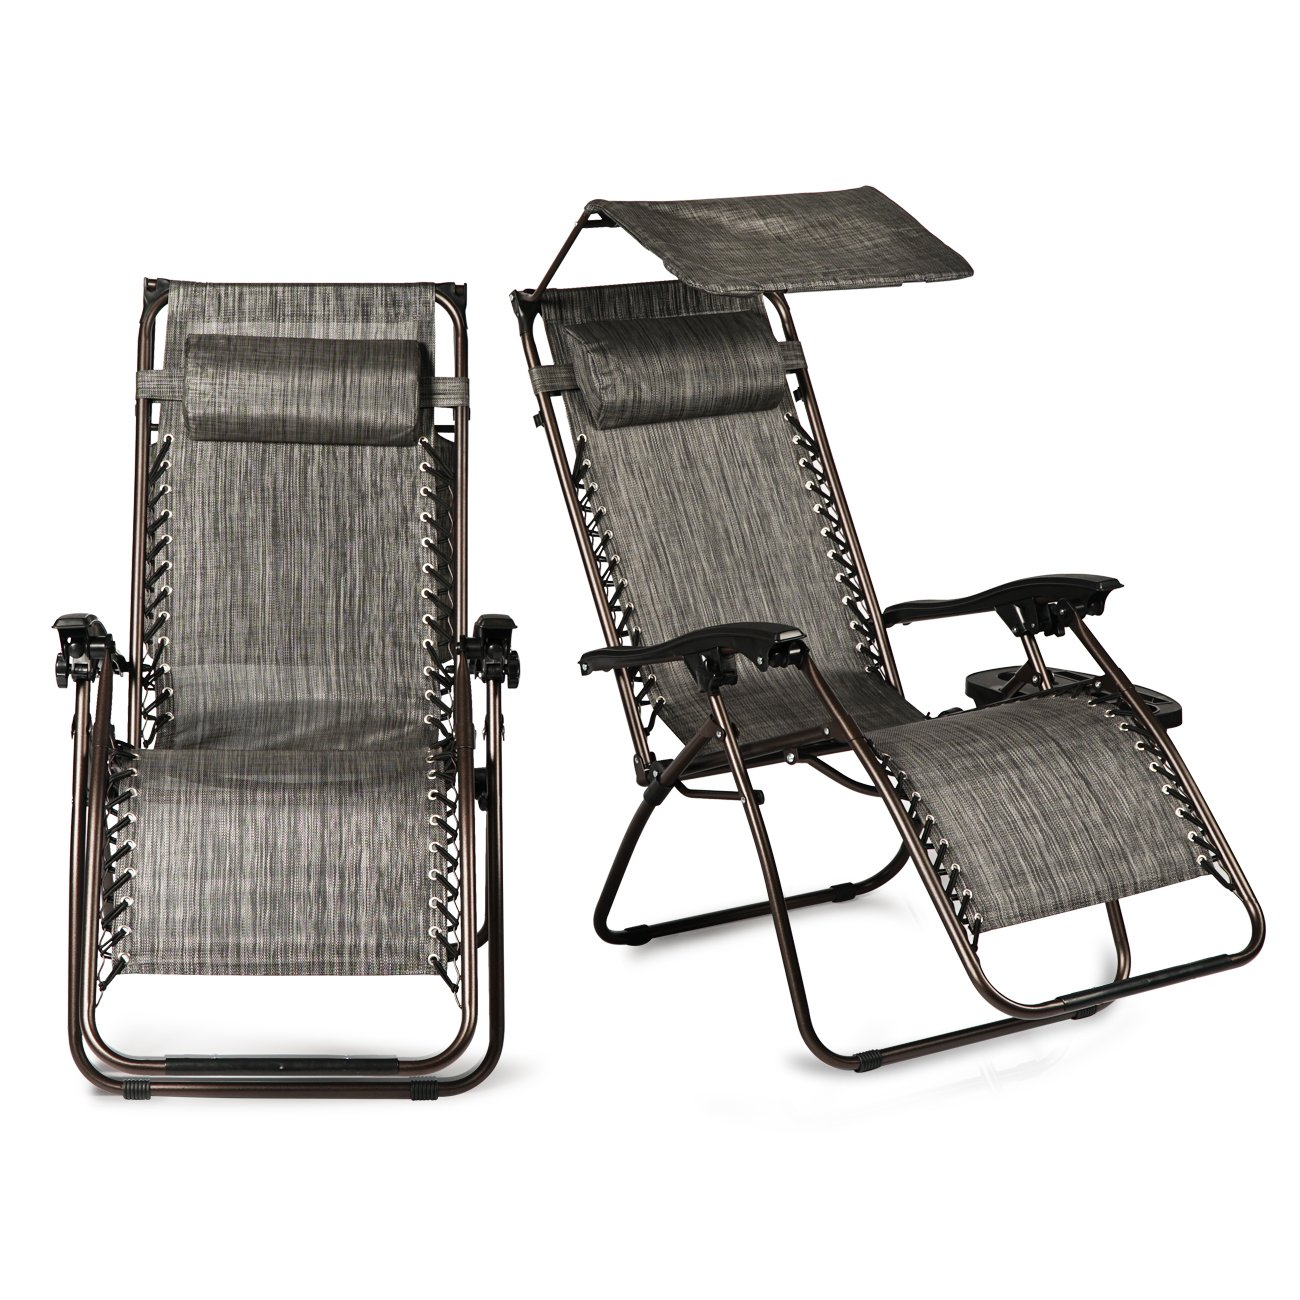 Belleze Set of 2 Ergonomic Recliner Phone Slots Reclining Zero Gravity Chairs Canopy Shade Cover w/Adjustable Pillows, Gray